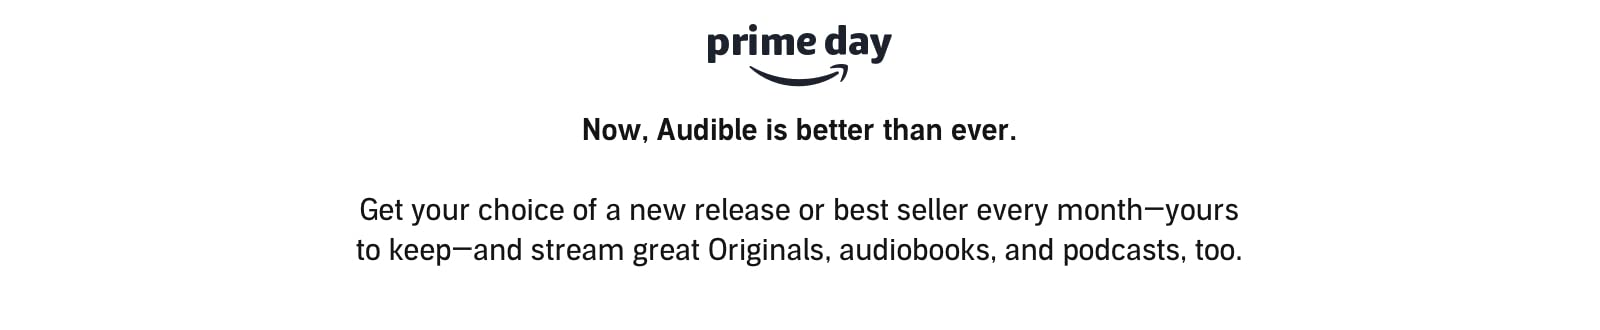 Now, Audible is better than ever. Get your choice of a new release or best seller every month-yours to keep-and stream great Originals, audiobooks, and podcasts, too.